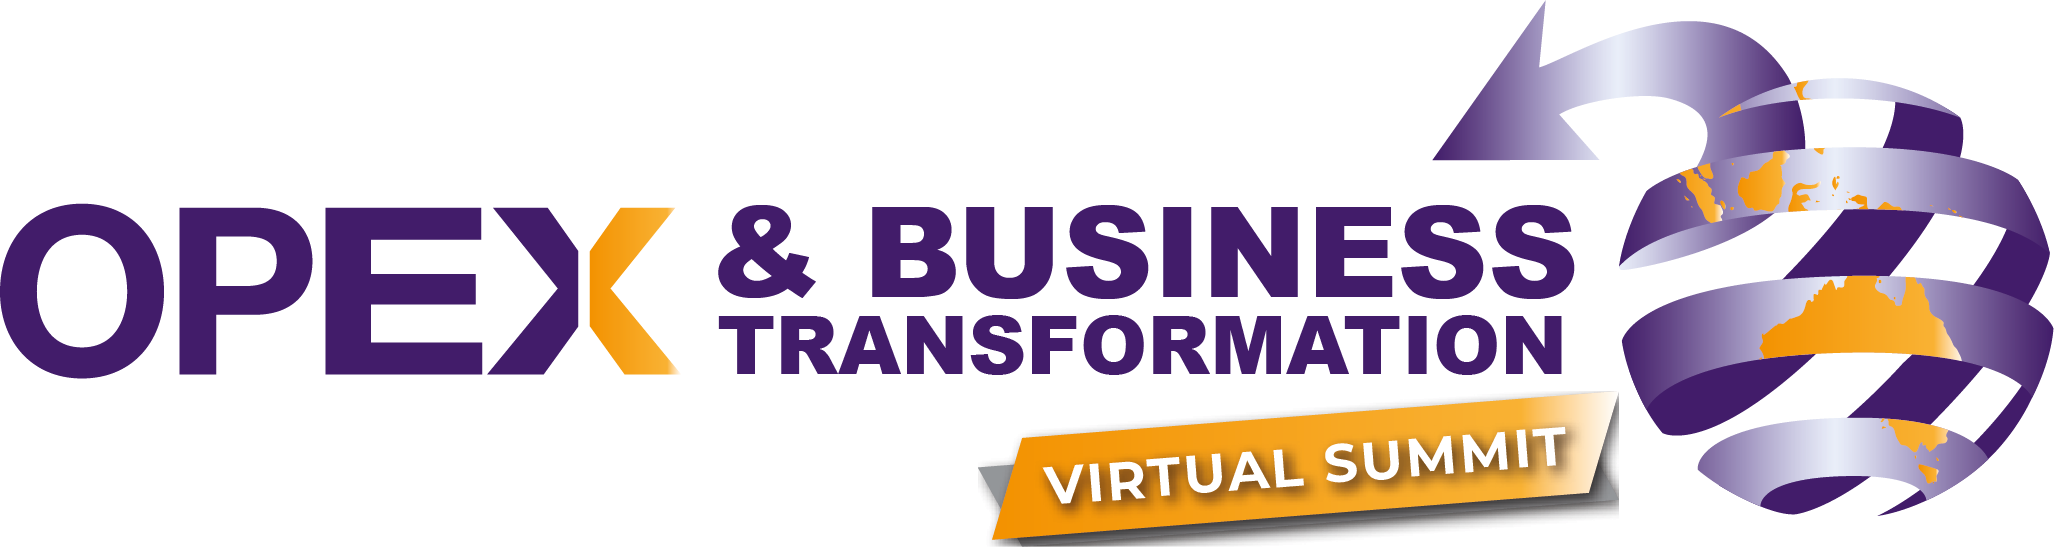 OPEX & Business Transformation: Online Summit